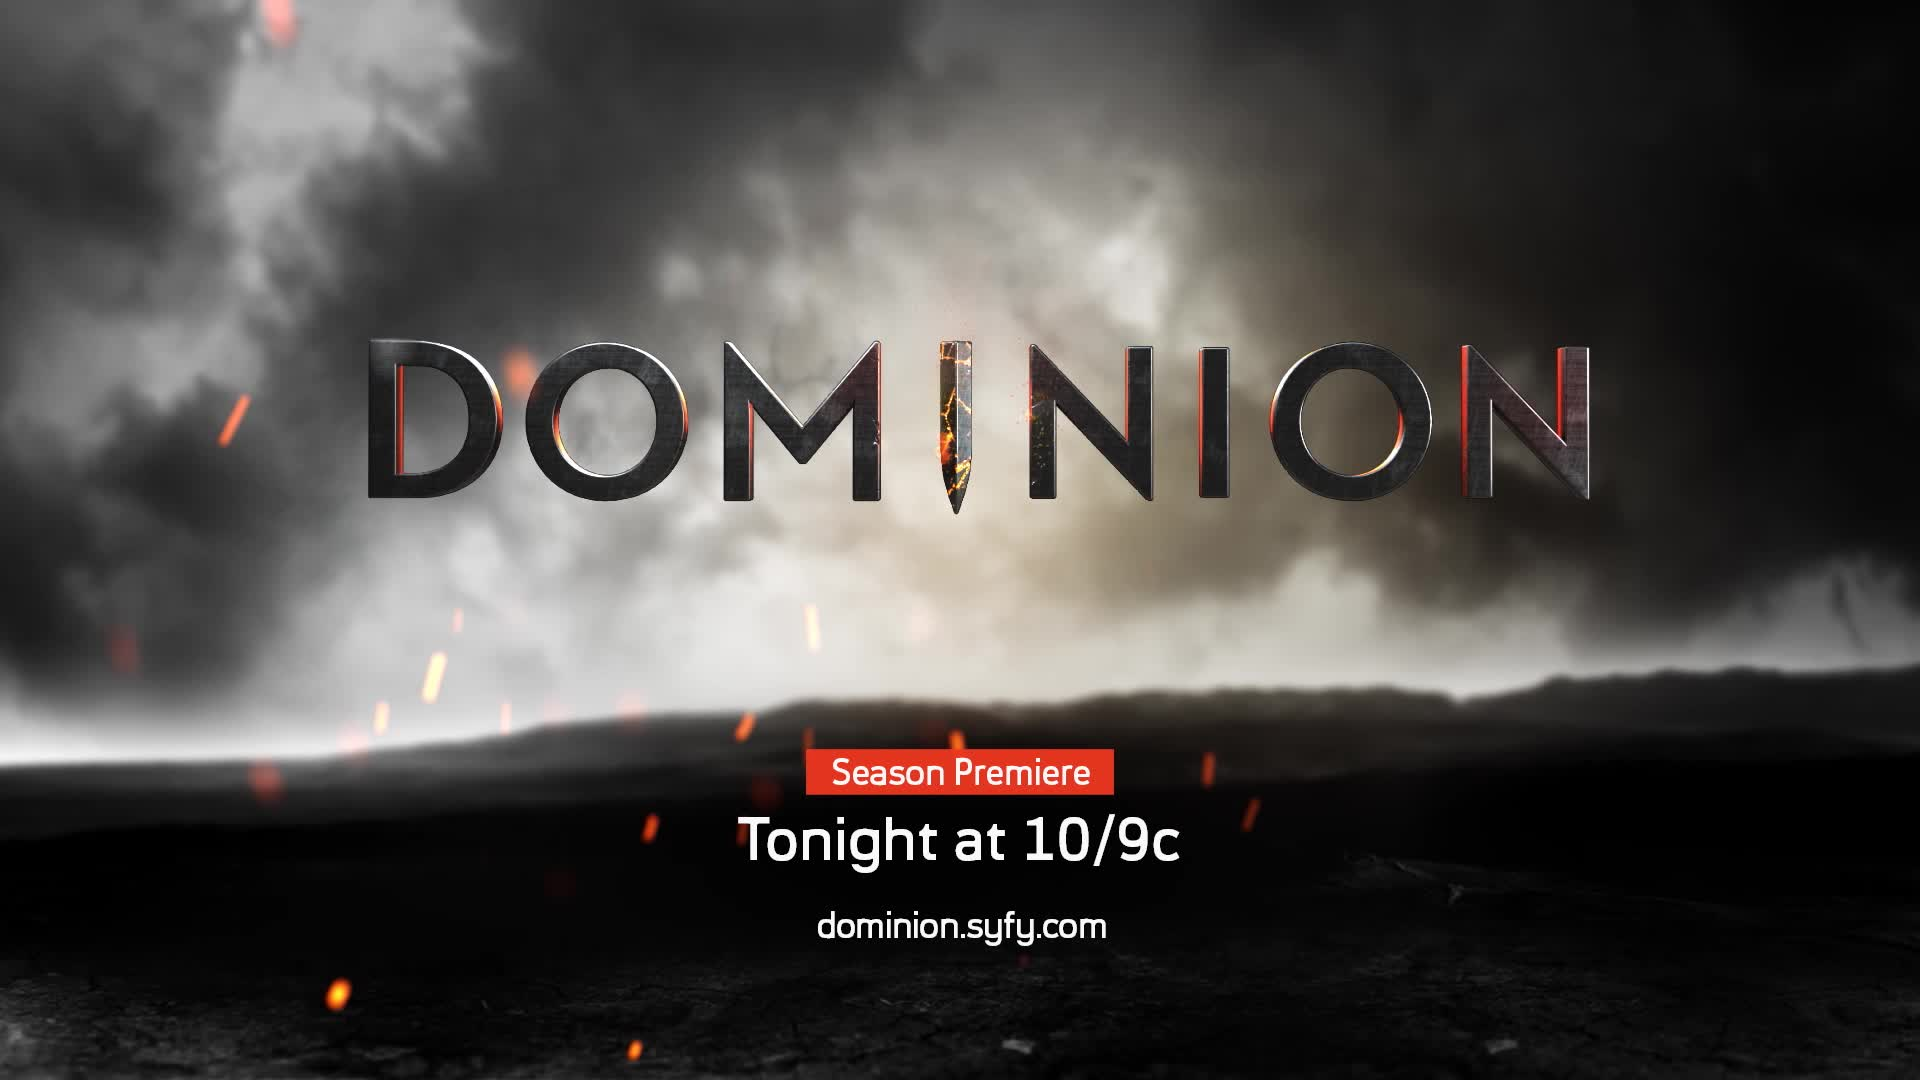 italian movie dubbed in italian free download Dominion